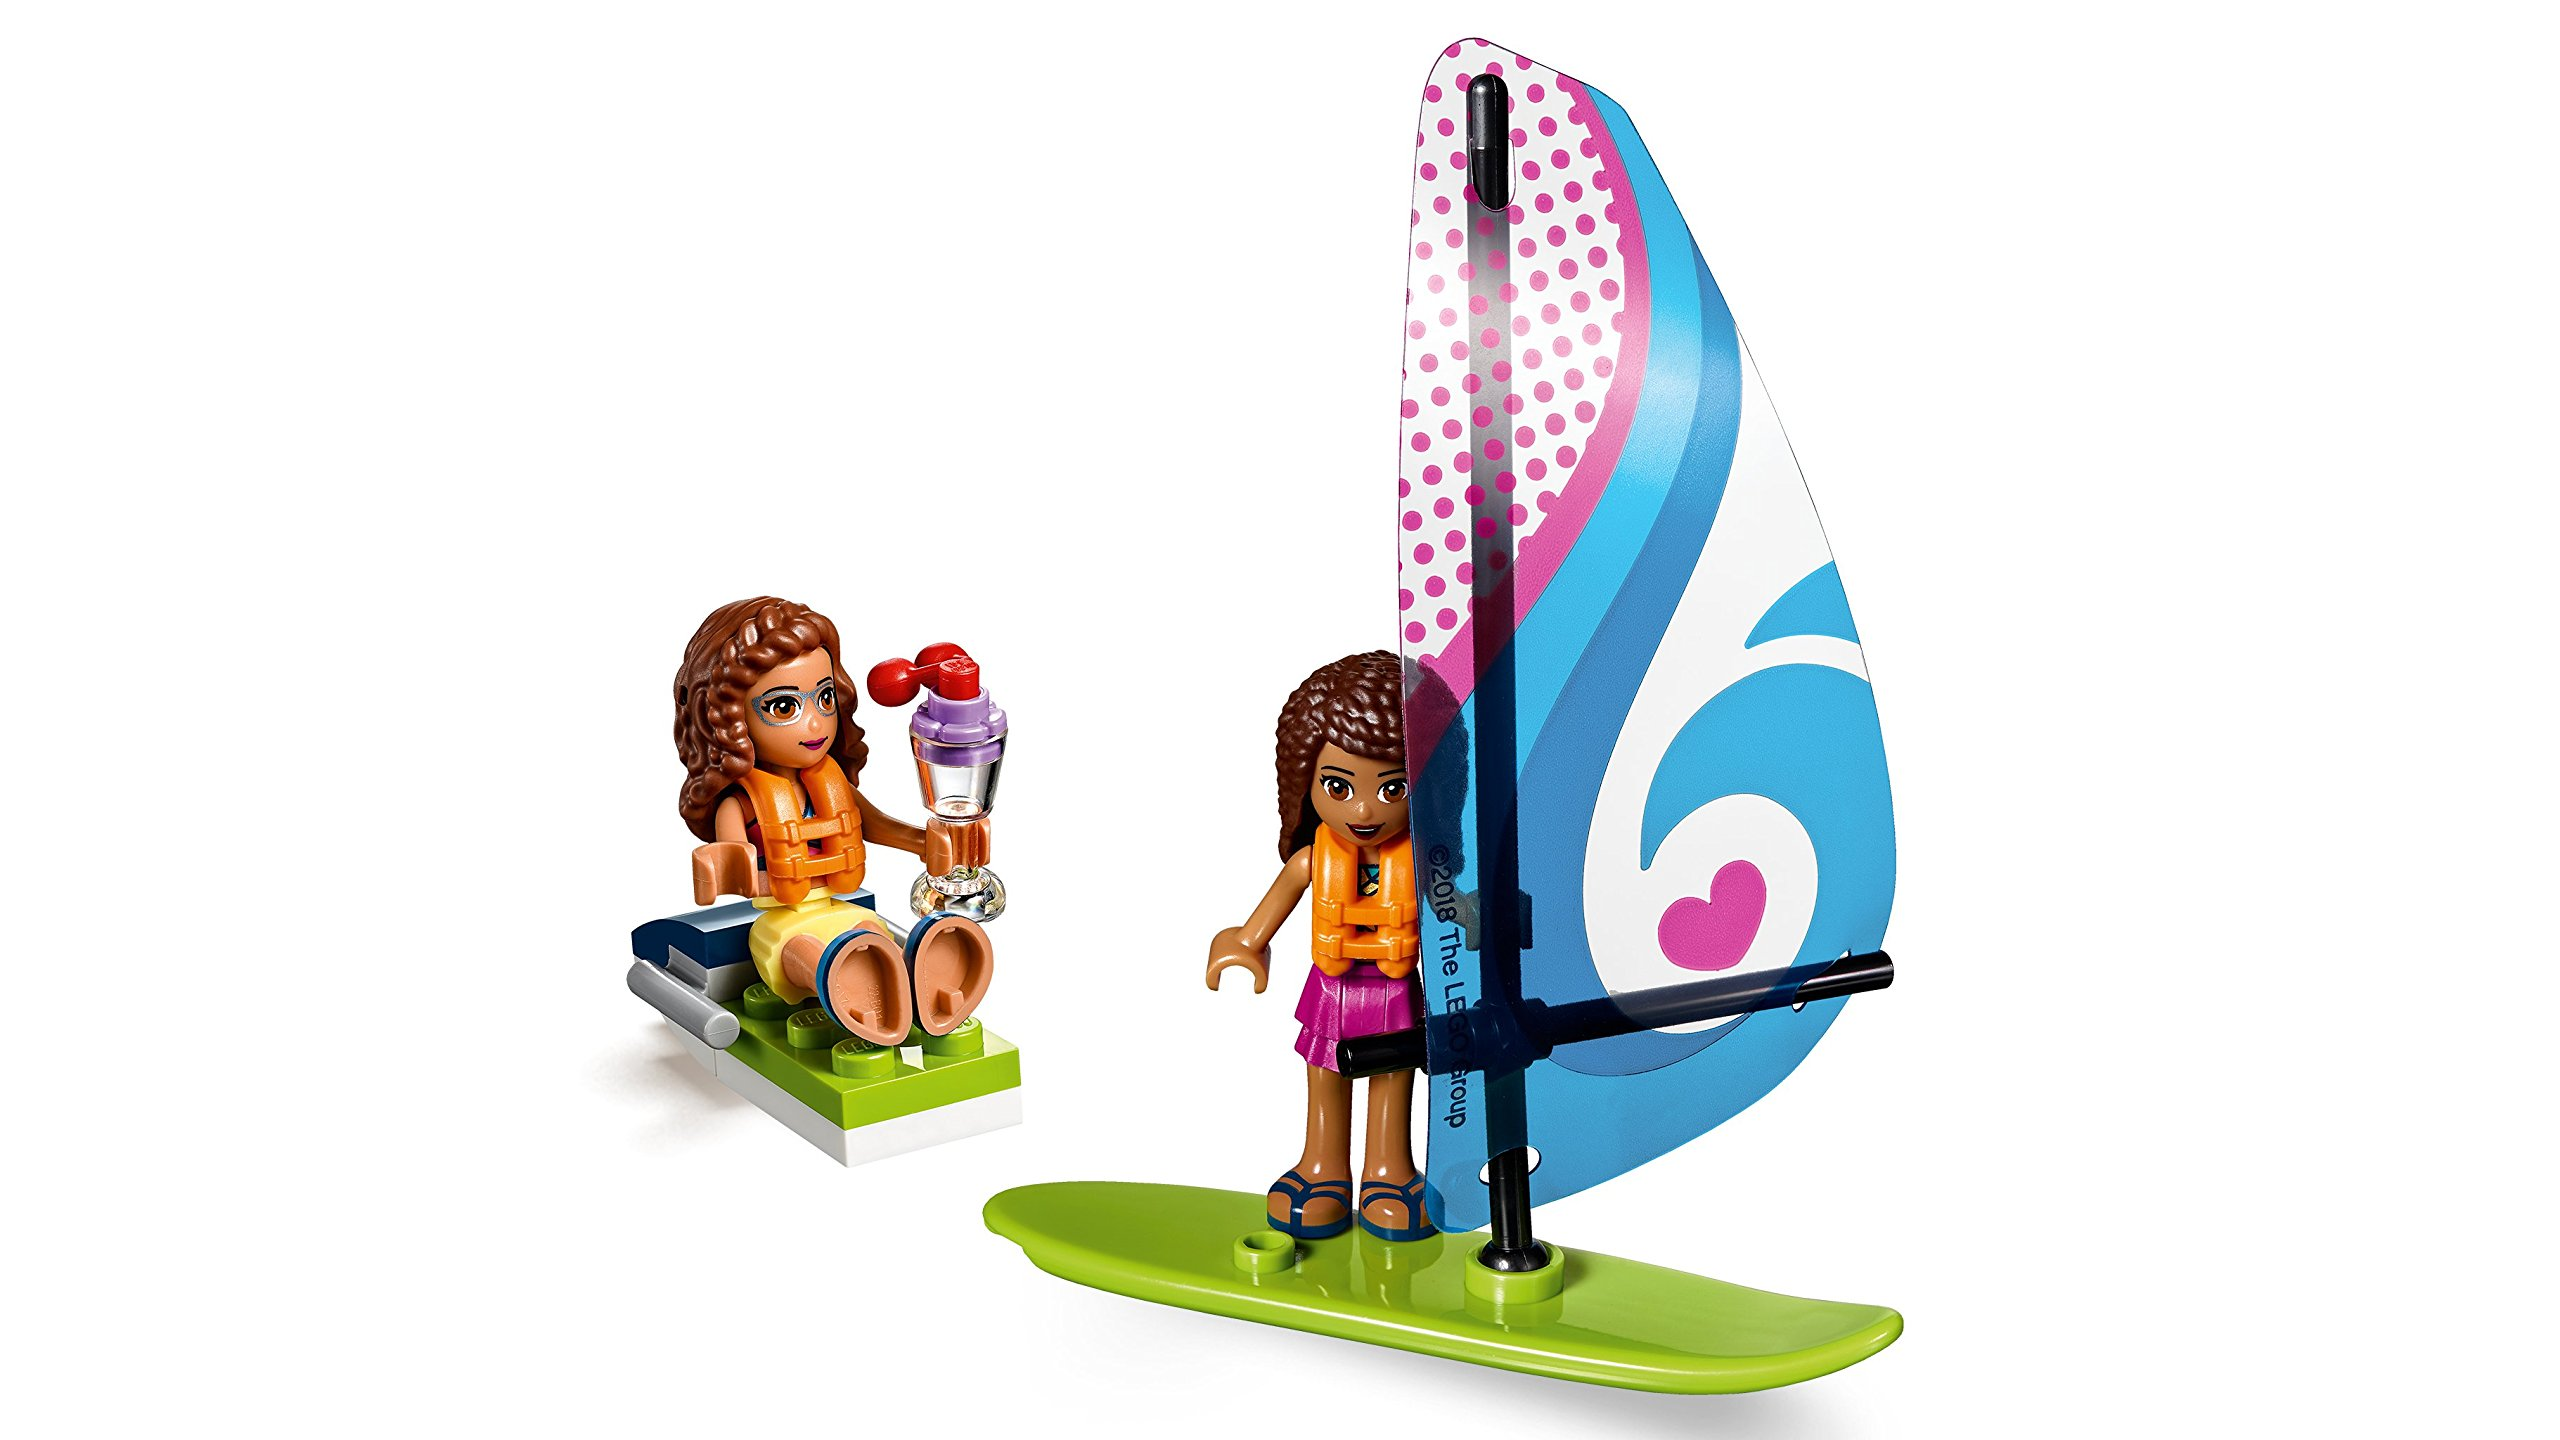 Lego Friends Il Resort di Heartlake City, 41347 3 spesavip